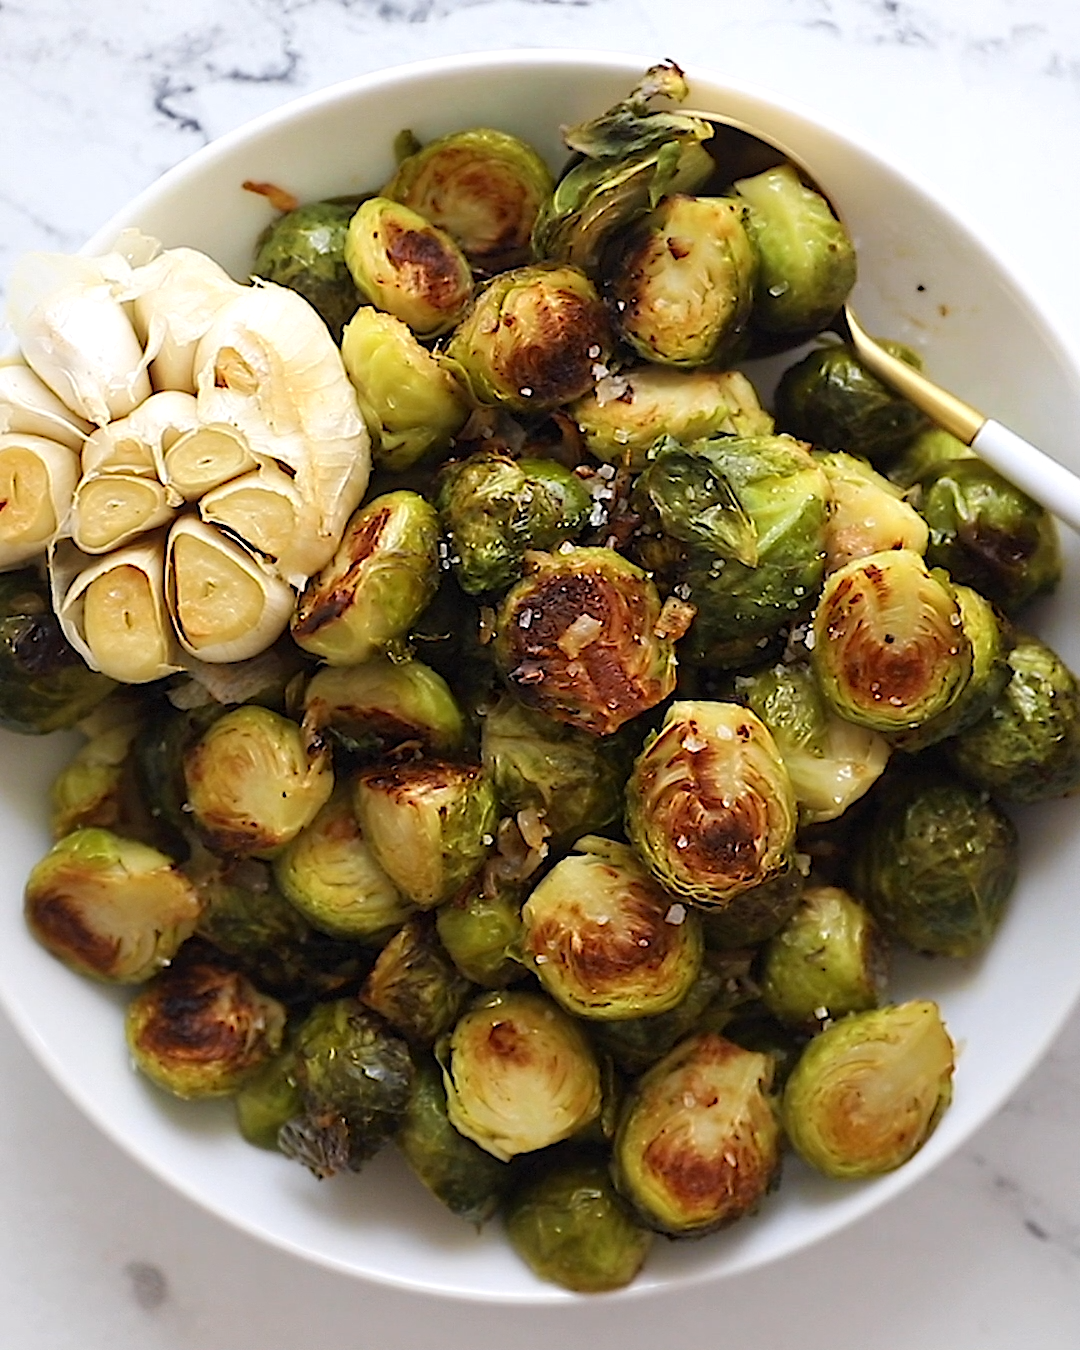 How to Roast Brussel Sprouts  #buffalobrusselsprouts